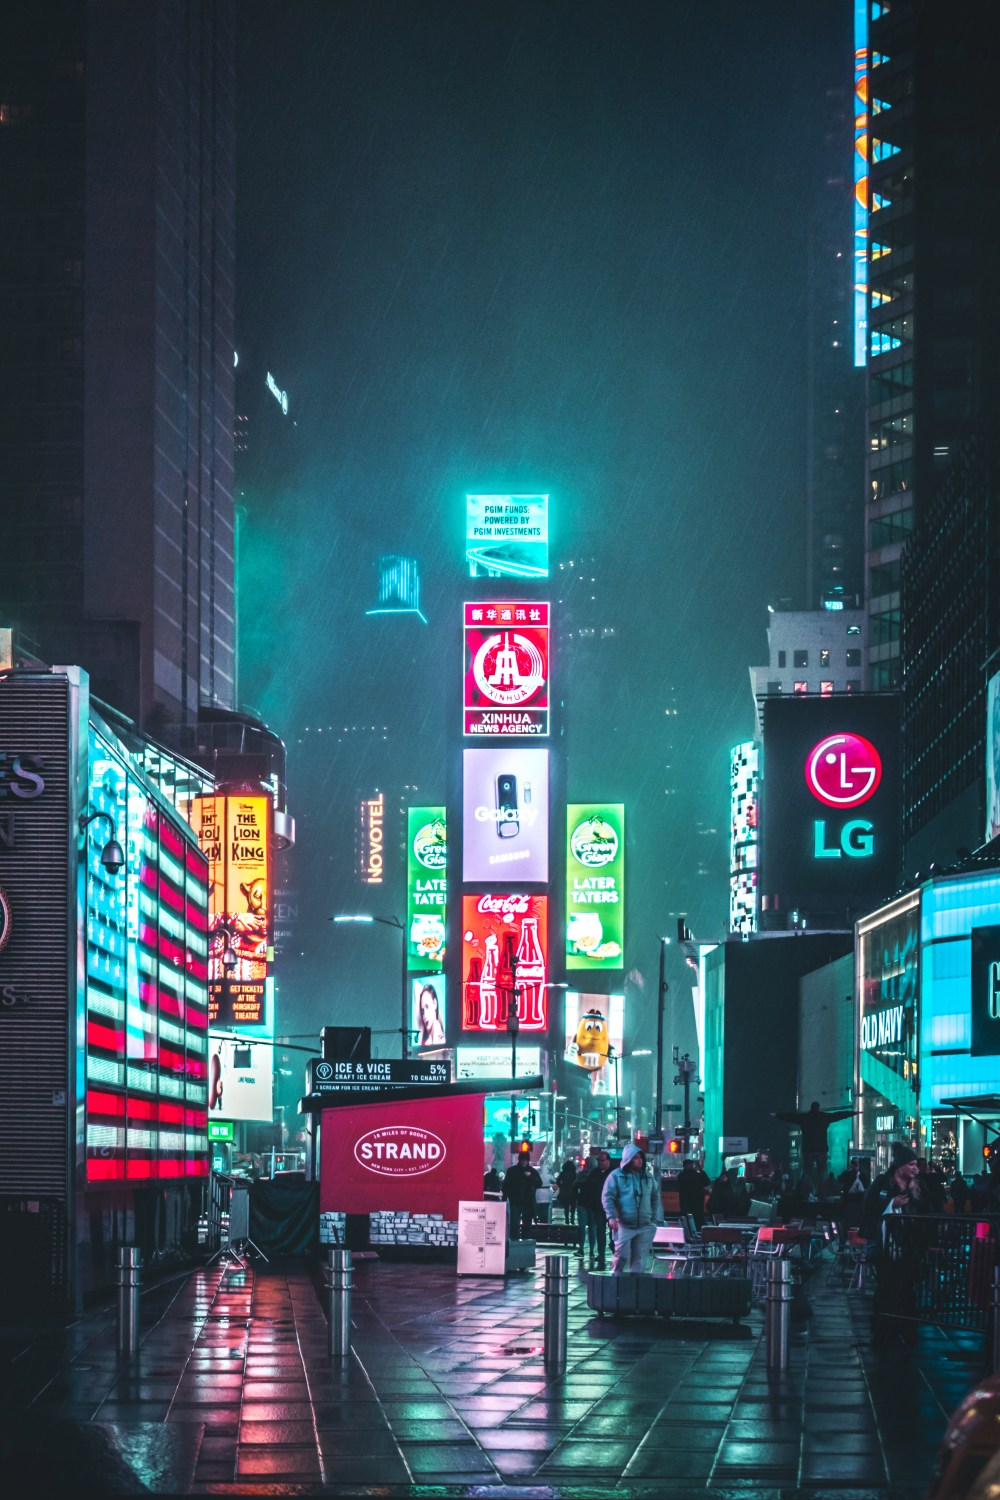 New York City At Night Hd Wallpapers 500 Neon City Pictures Download Free Images On Unsplash